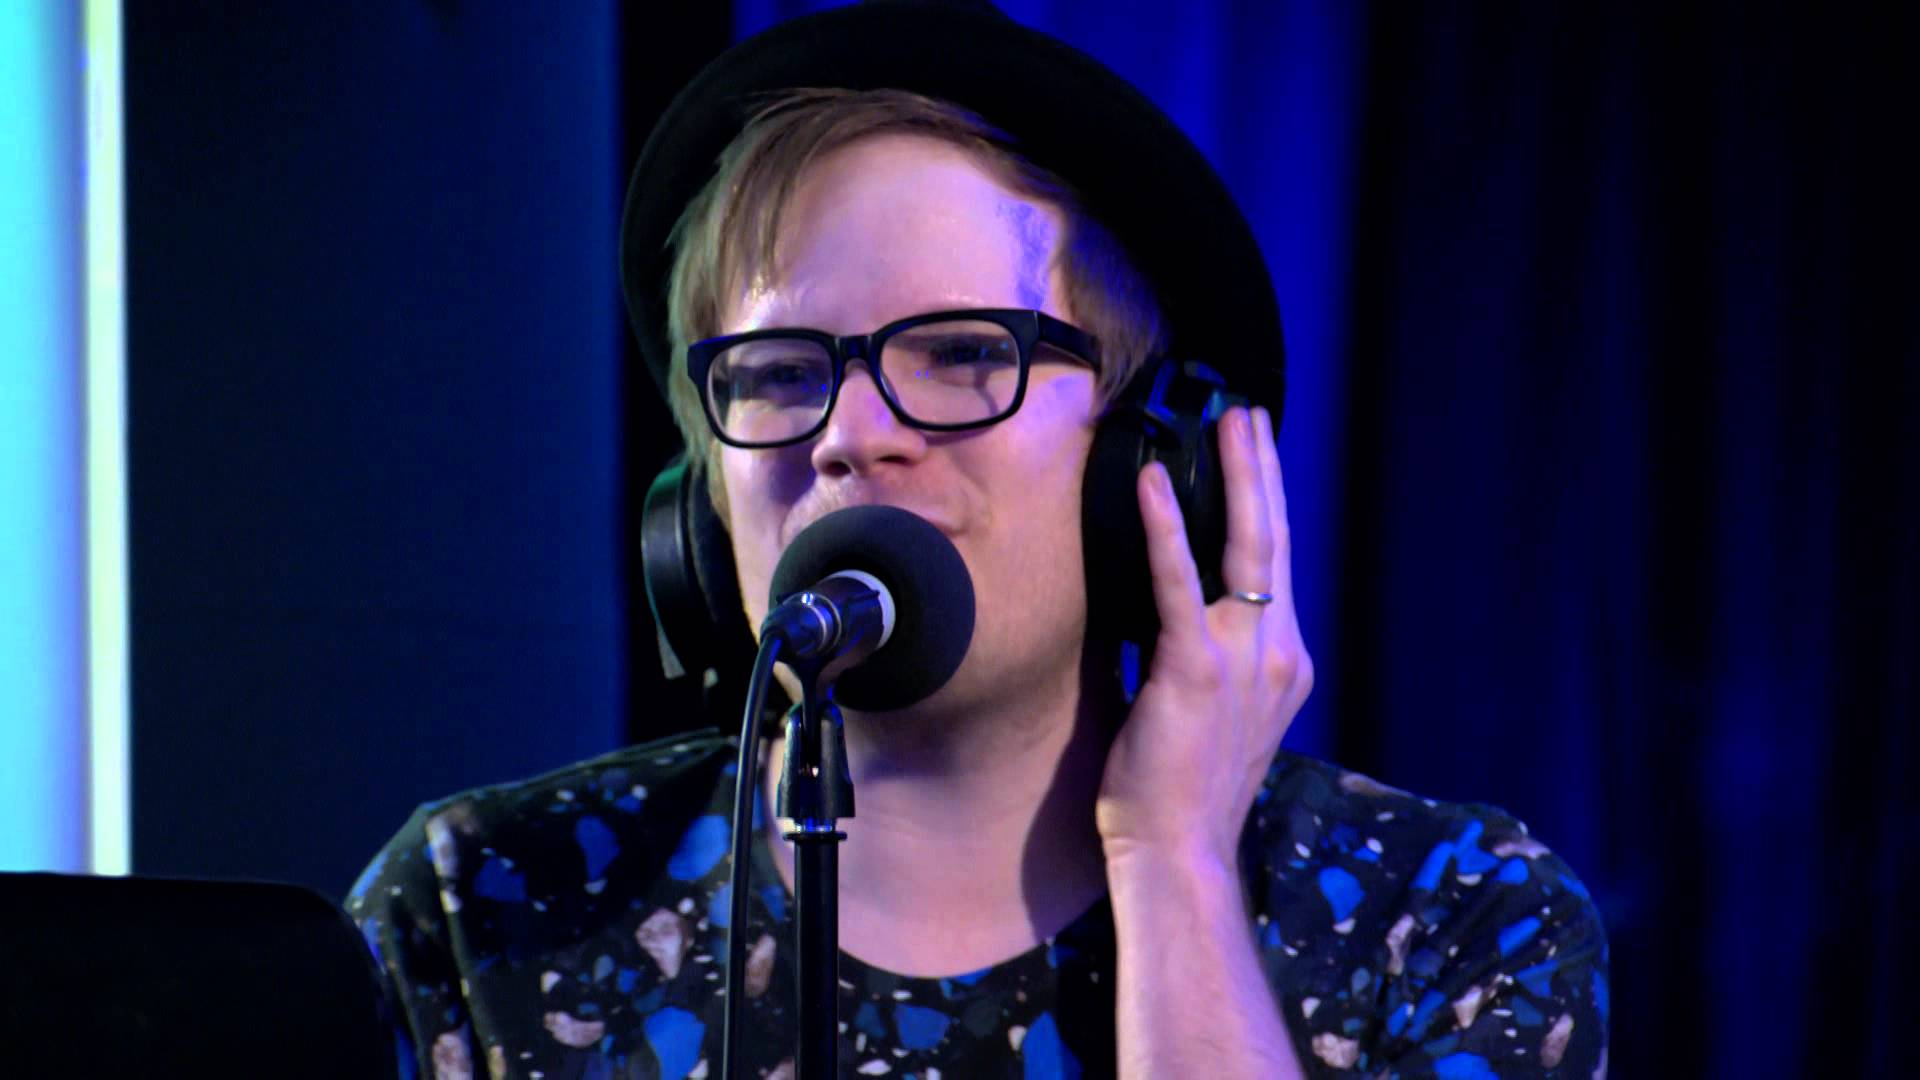 Fall Out Boy's Patrick Stump on Live Lounge